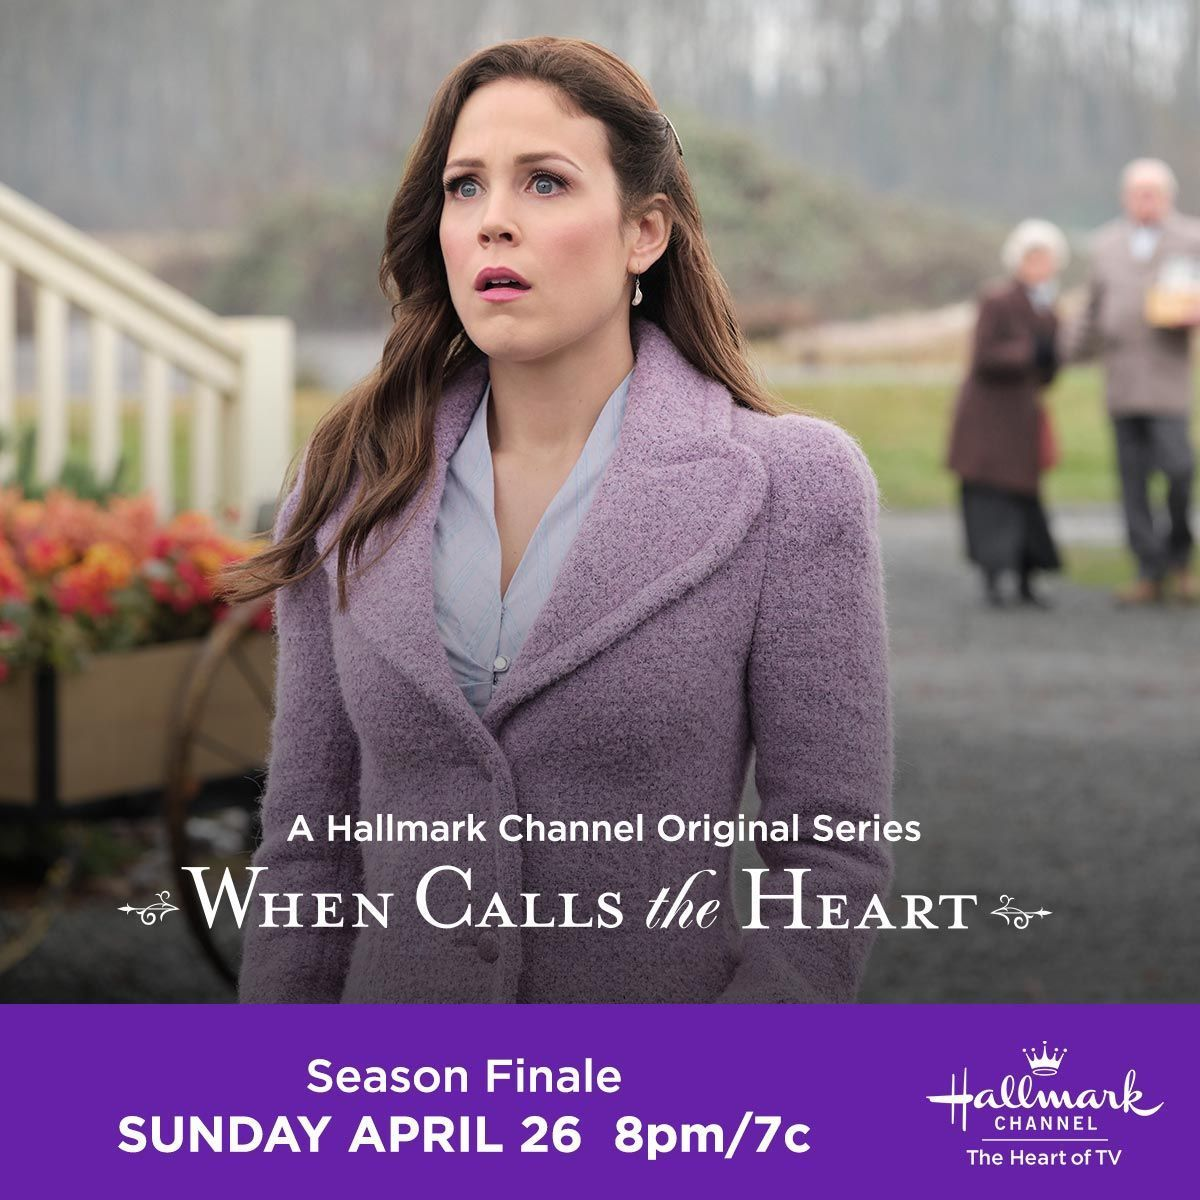 On The Dramatic Season Finale Of When Calls The Heart A New Beginning May Be Ahead For Elizabeth Follow Your Now And Then Movie Hallmark Channel Erin Krakow